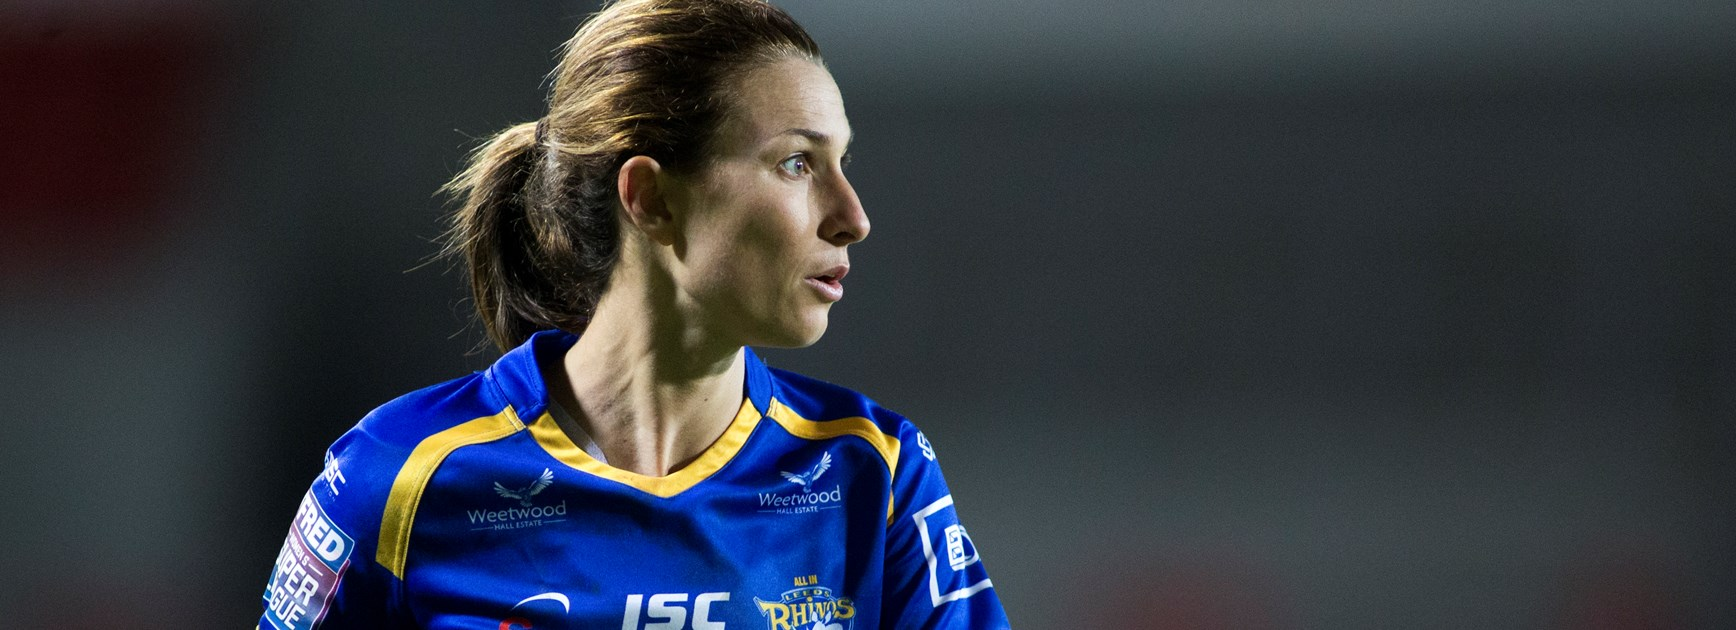 Super League's 'Woman of Steel' Courtney Hill.